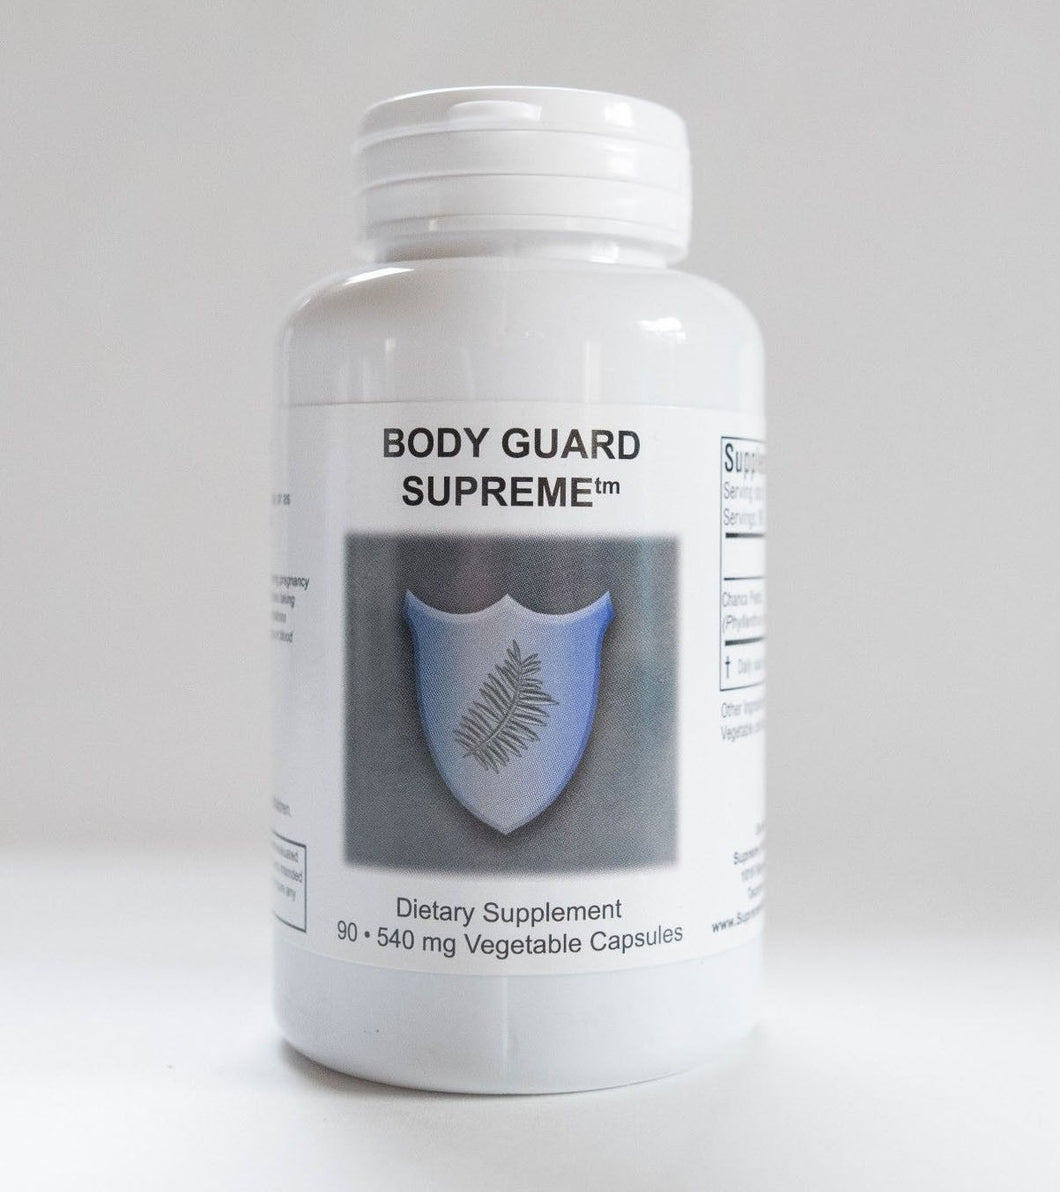 Bodyguard Supreme by Supreme Nutrition. Detox, Antimicrobial, Kidney Stones & Gallstones